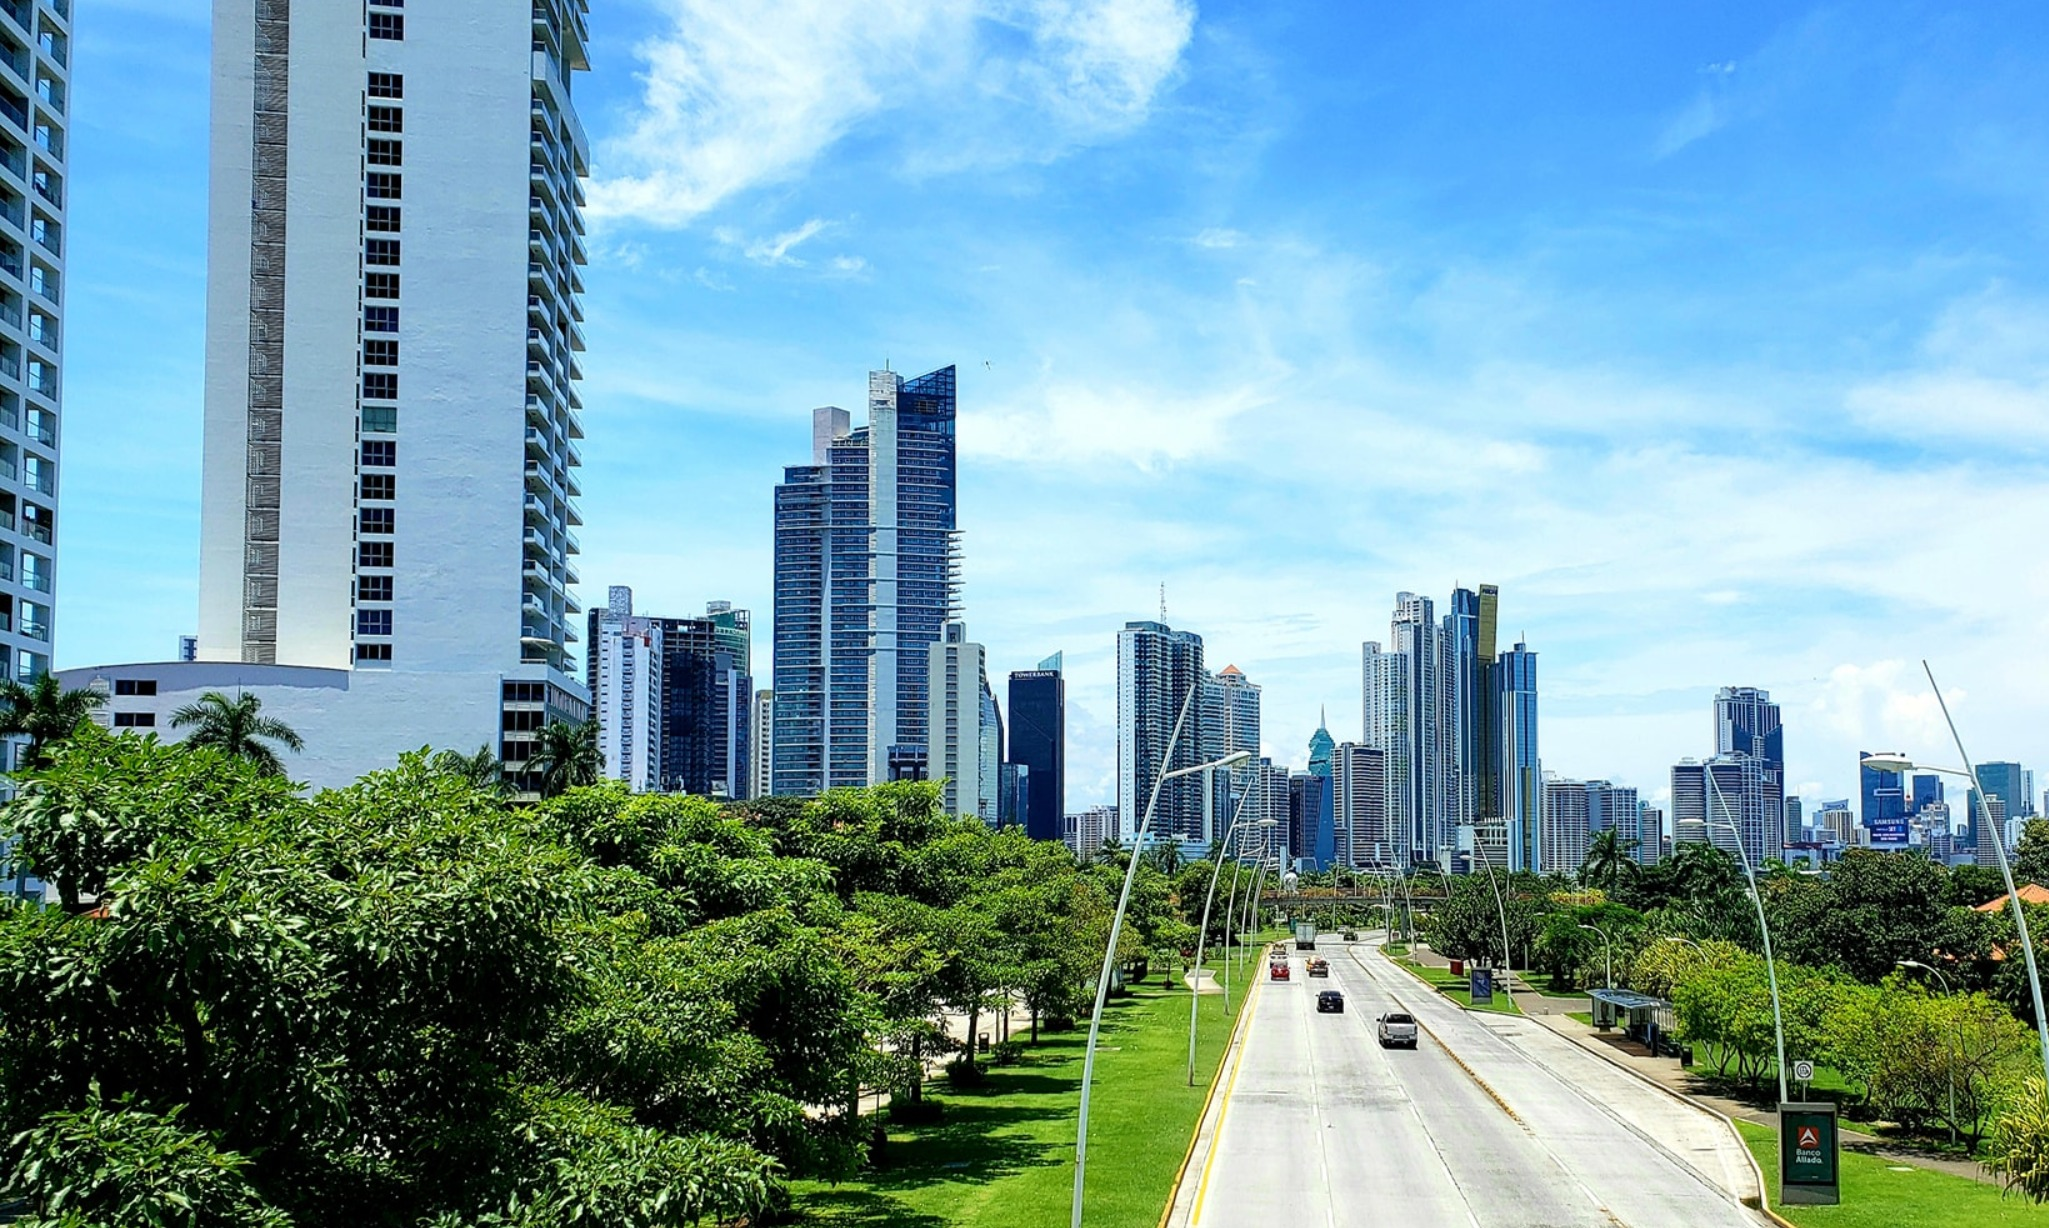 Why are so many people moving to Panamá City, Panamá?